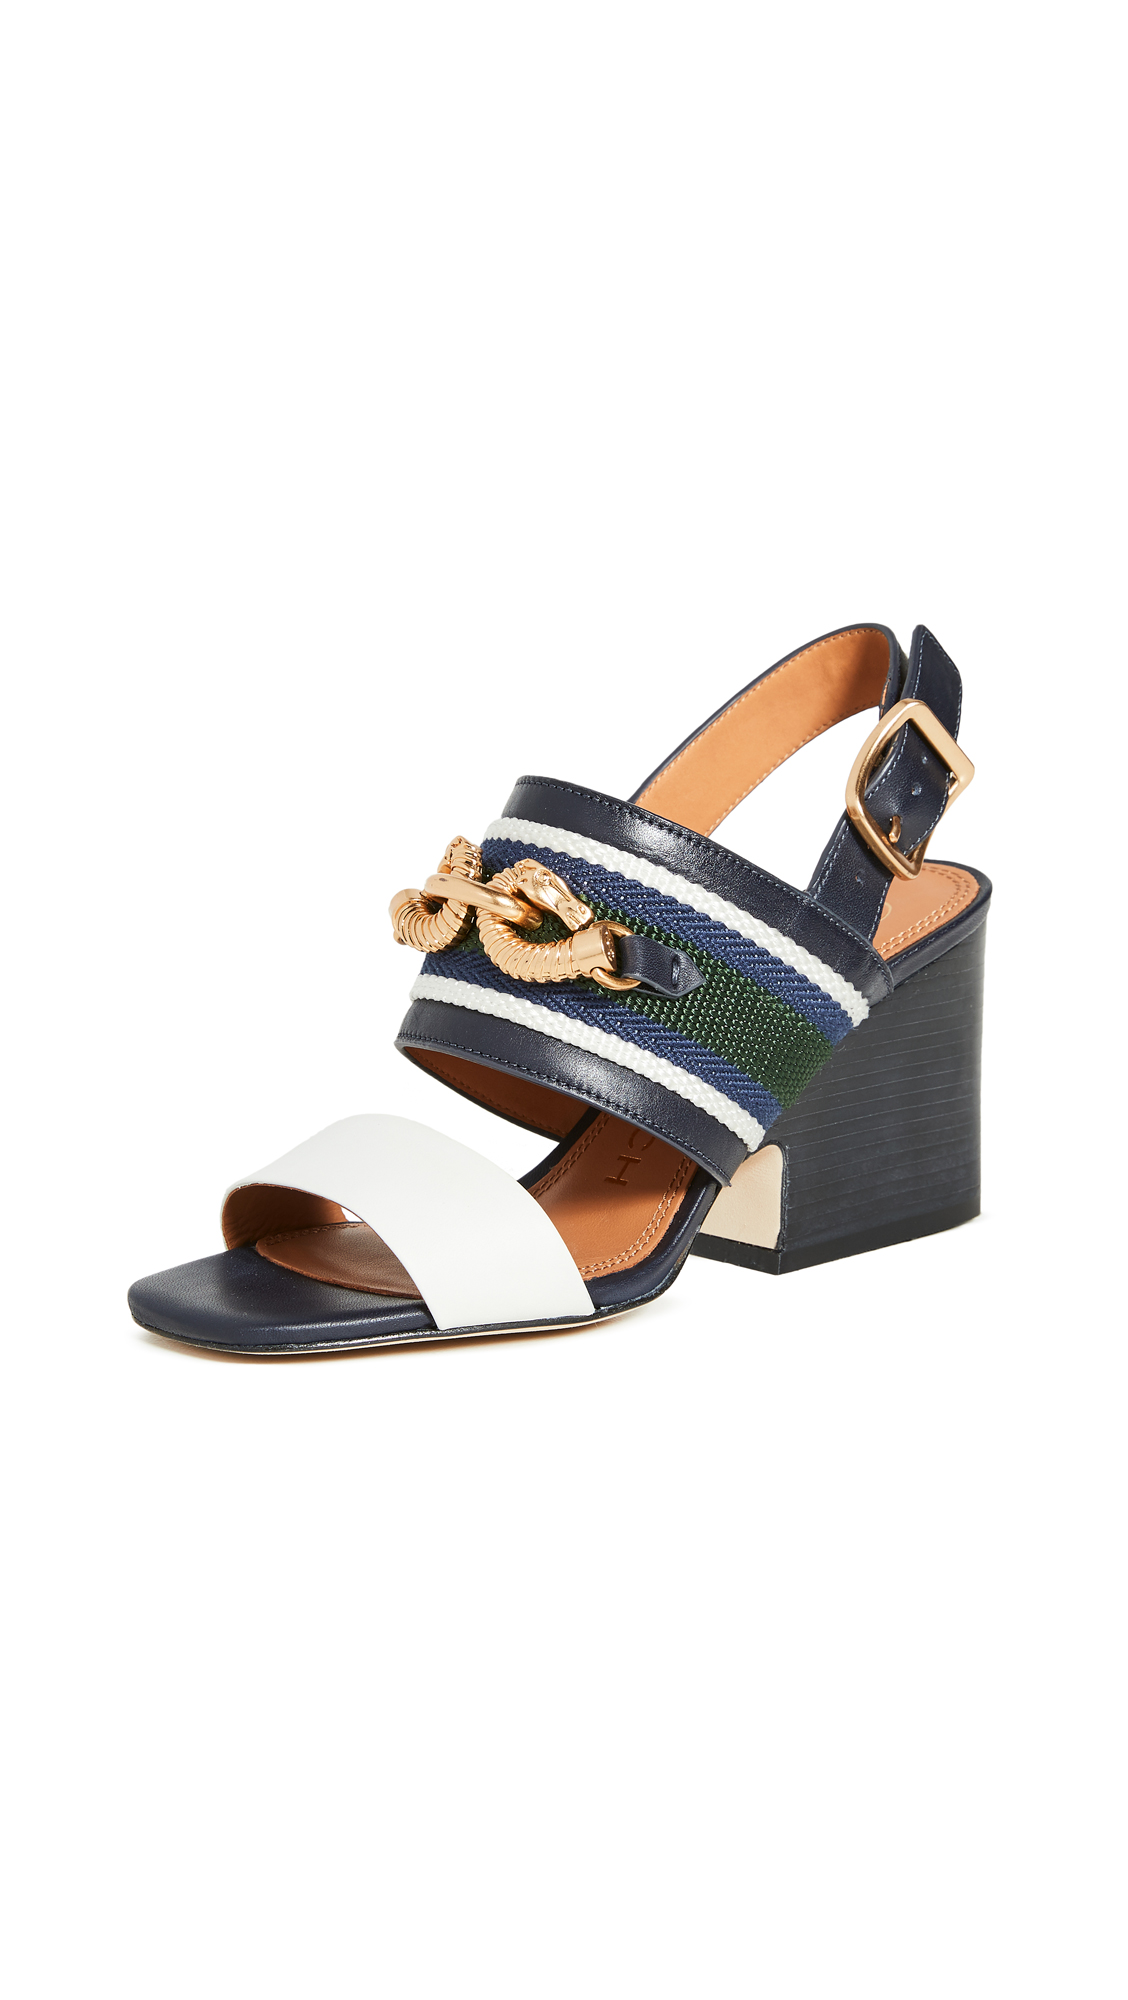 Buy Tory Burch 75mm Jessa Block Heel Sandals online, shop Tory Burch